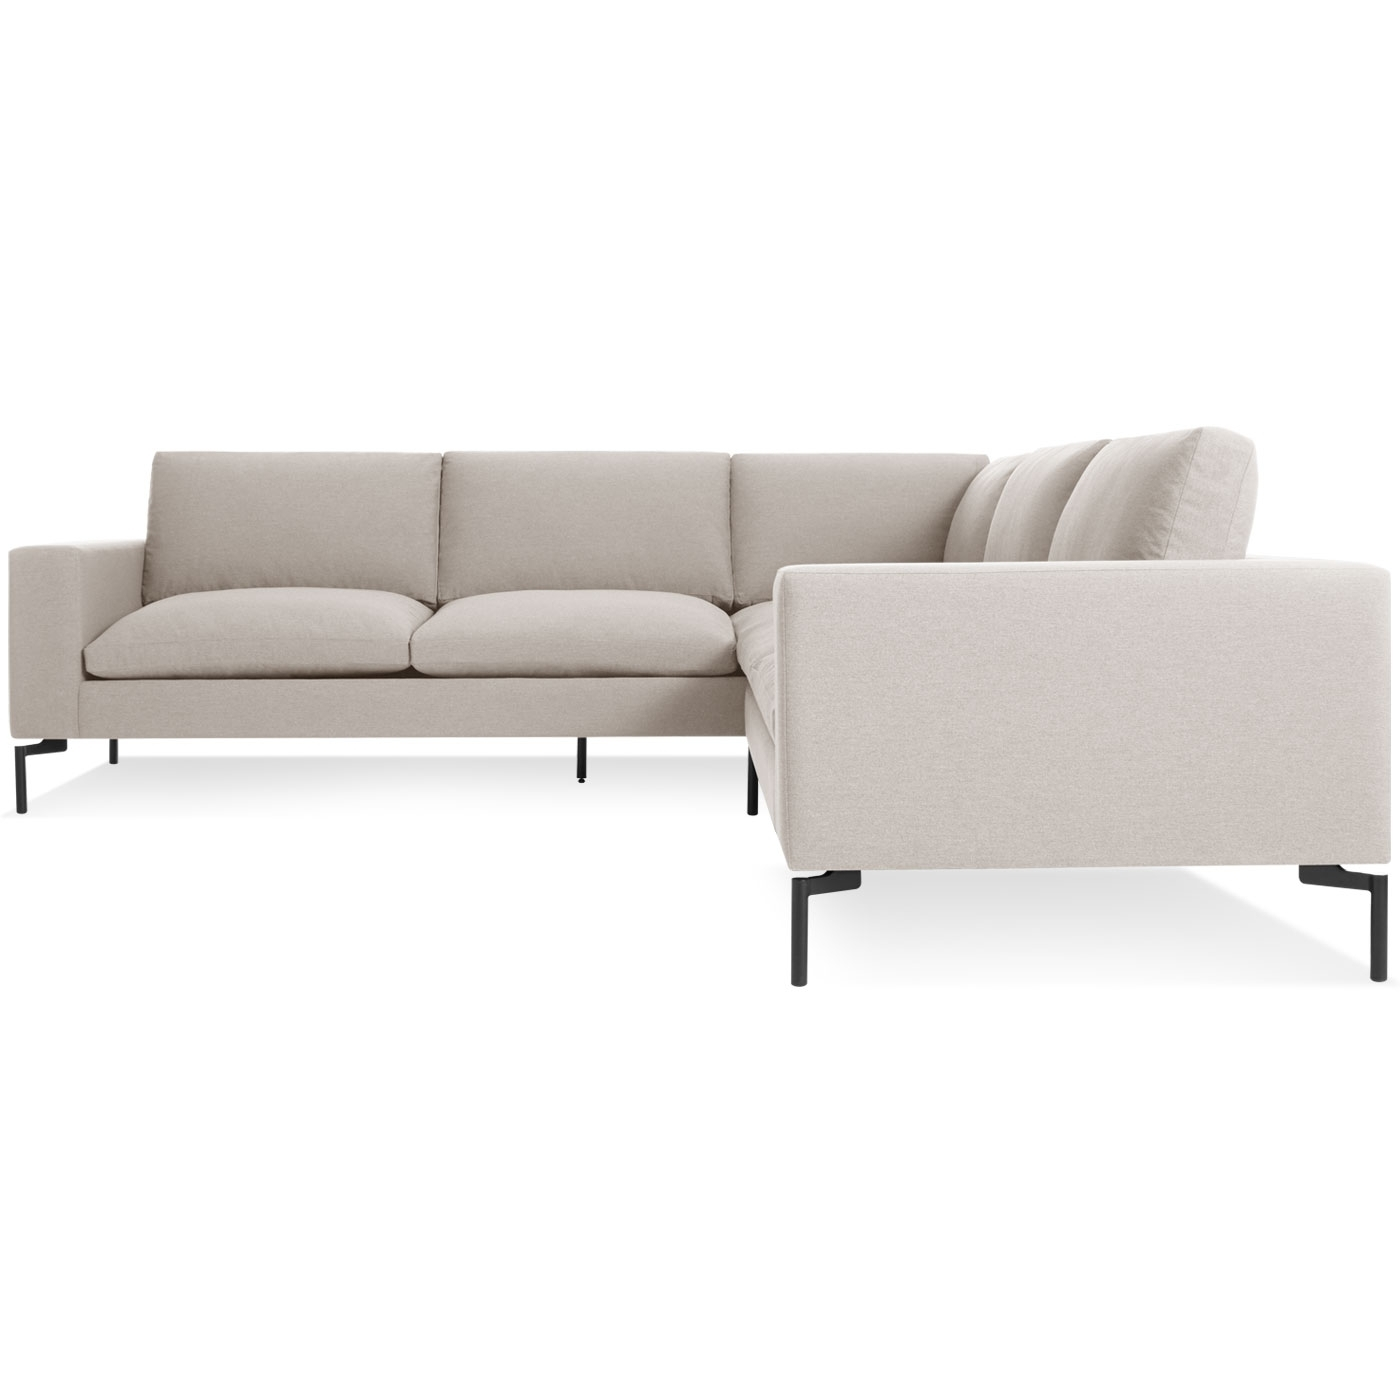 Uncategorized : L Sofa With Trendy New Standard Small Sectional Sofa With Regard To Sectional Sofas In Philippines (Photo 2 of 10)